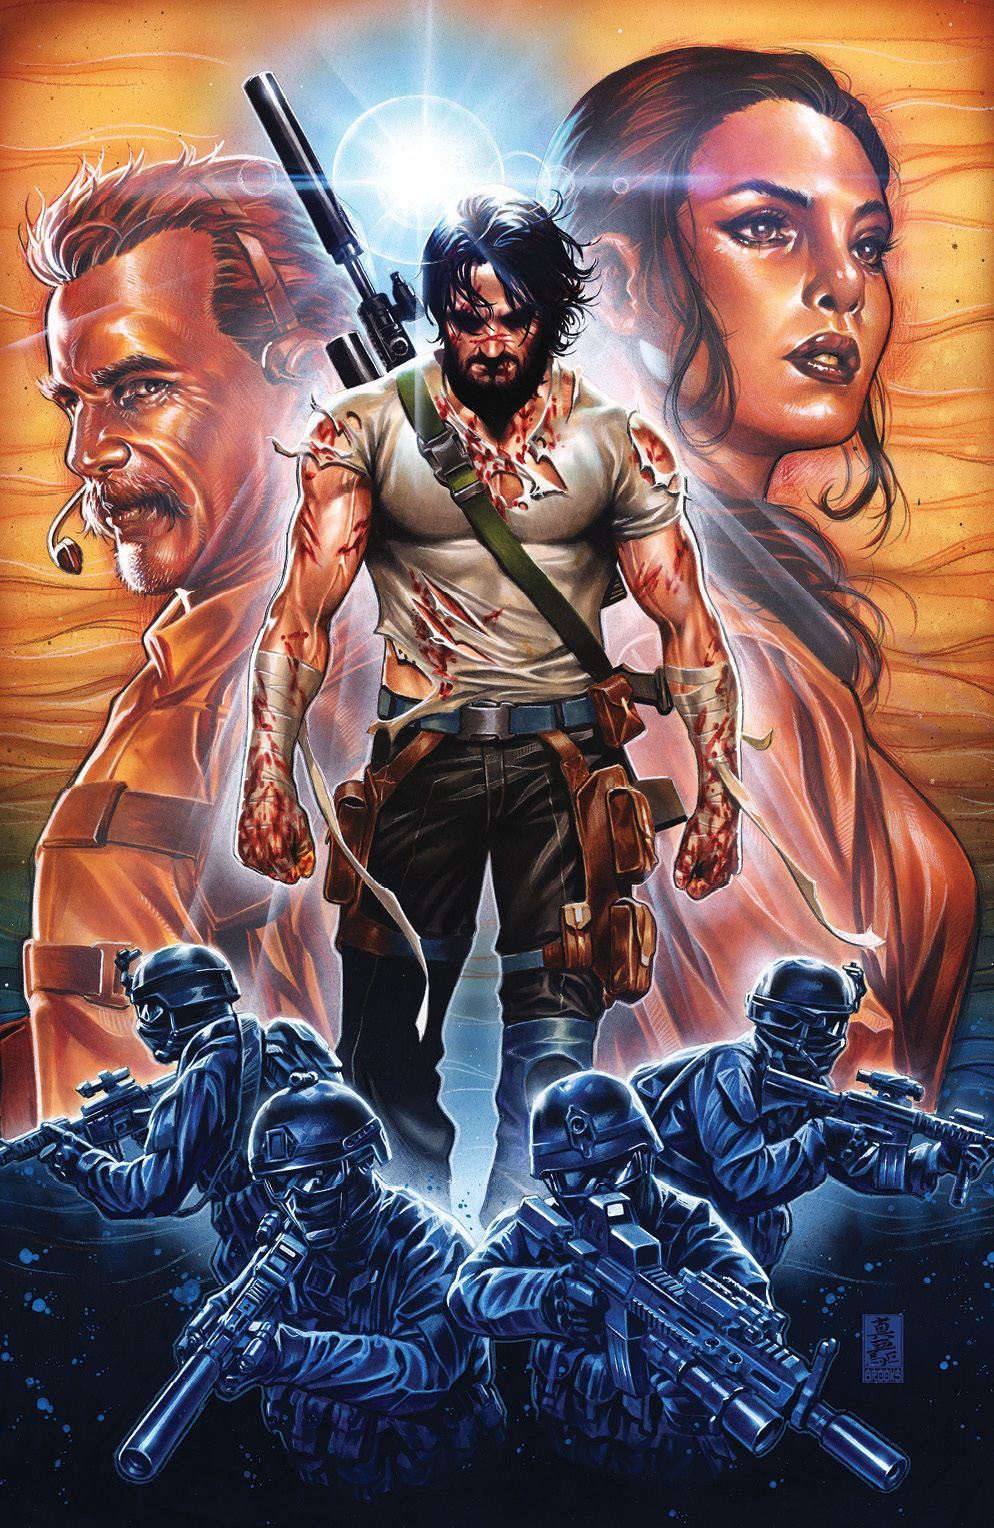 BRZRKR_001_Cover_J_Variant_001 ComicList: BOOM! Studios New Releases for 03/03/2021